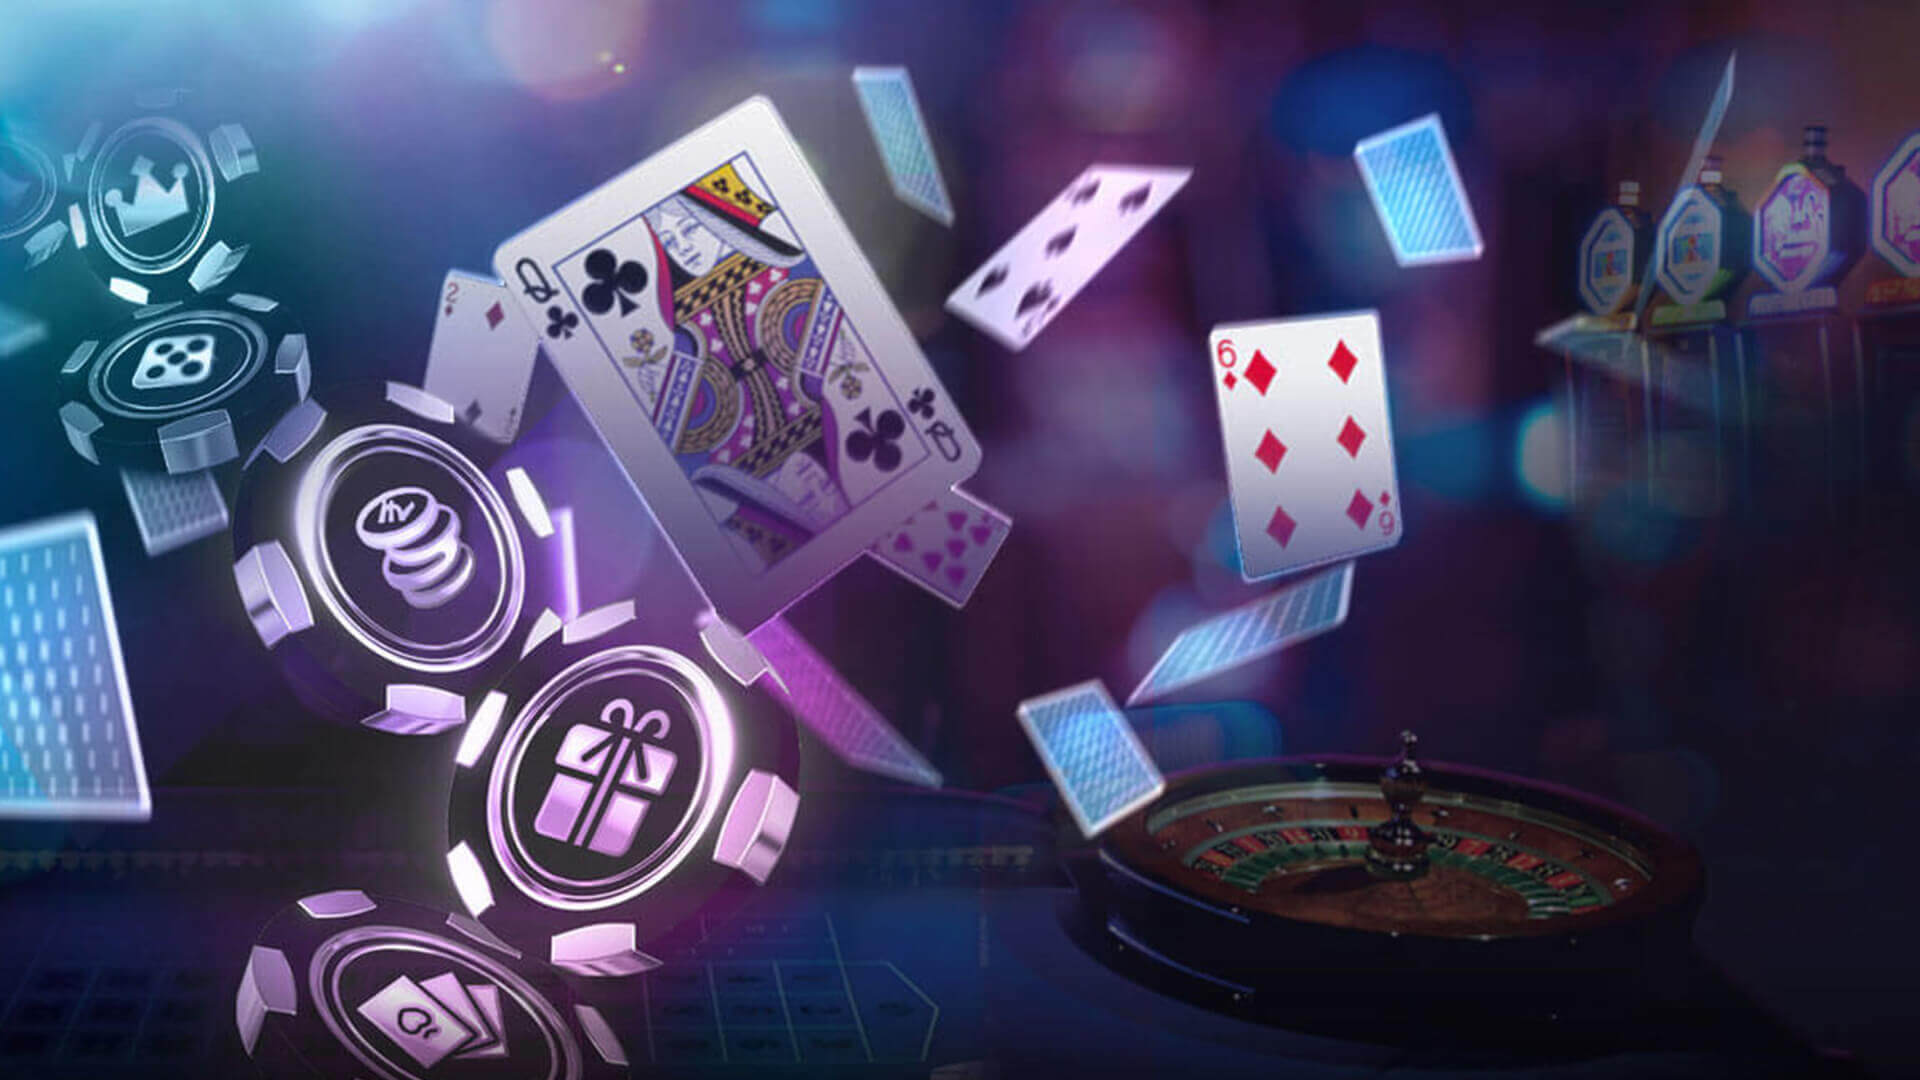 The Exciting Games Online – Online Gambling